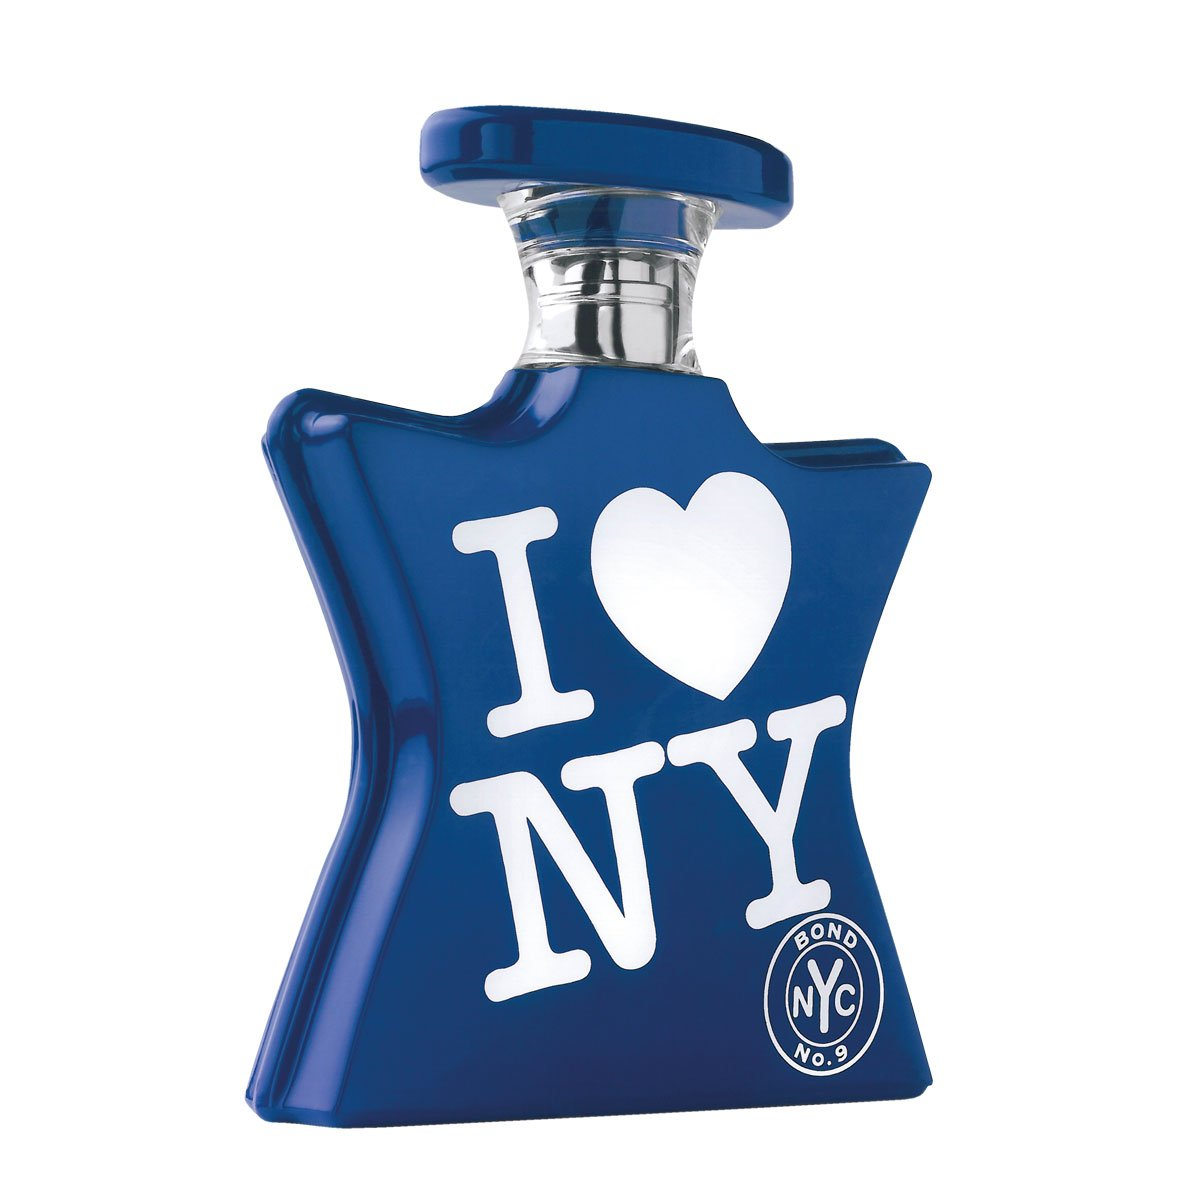 BOND NO 9 Cologne, I Love Ny Father's Day, 3.4 Ounce